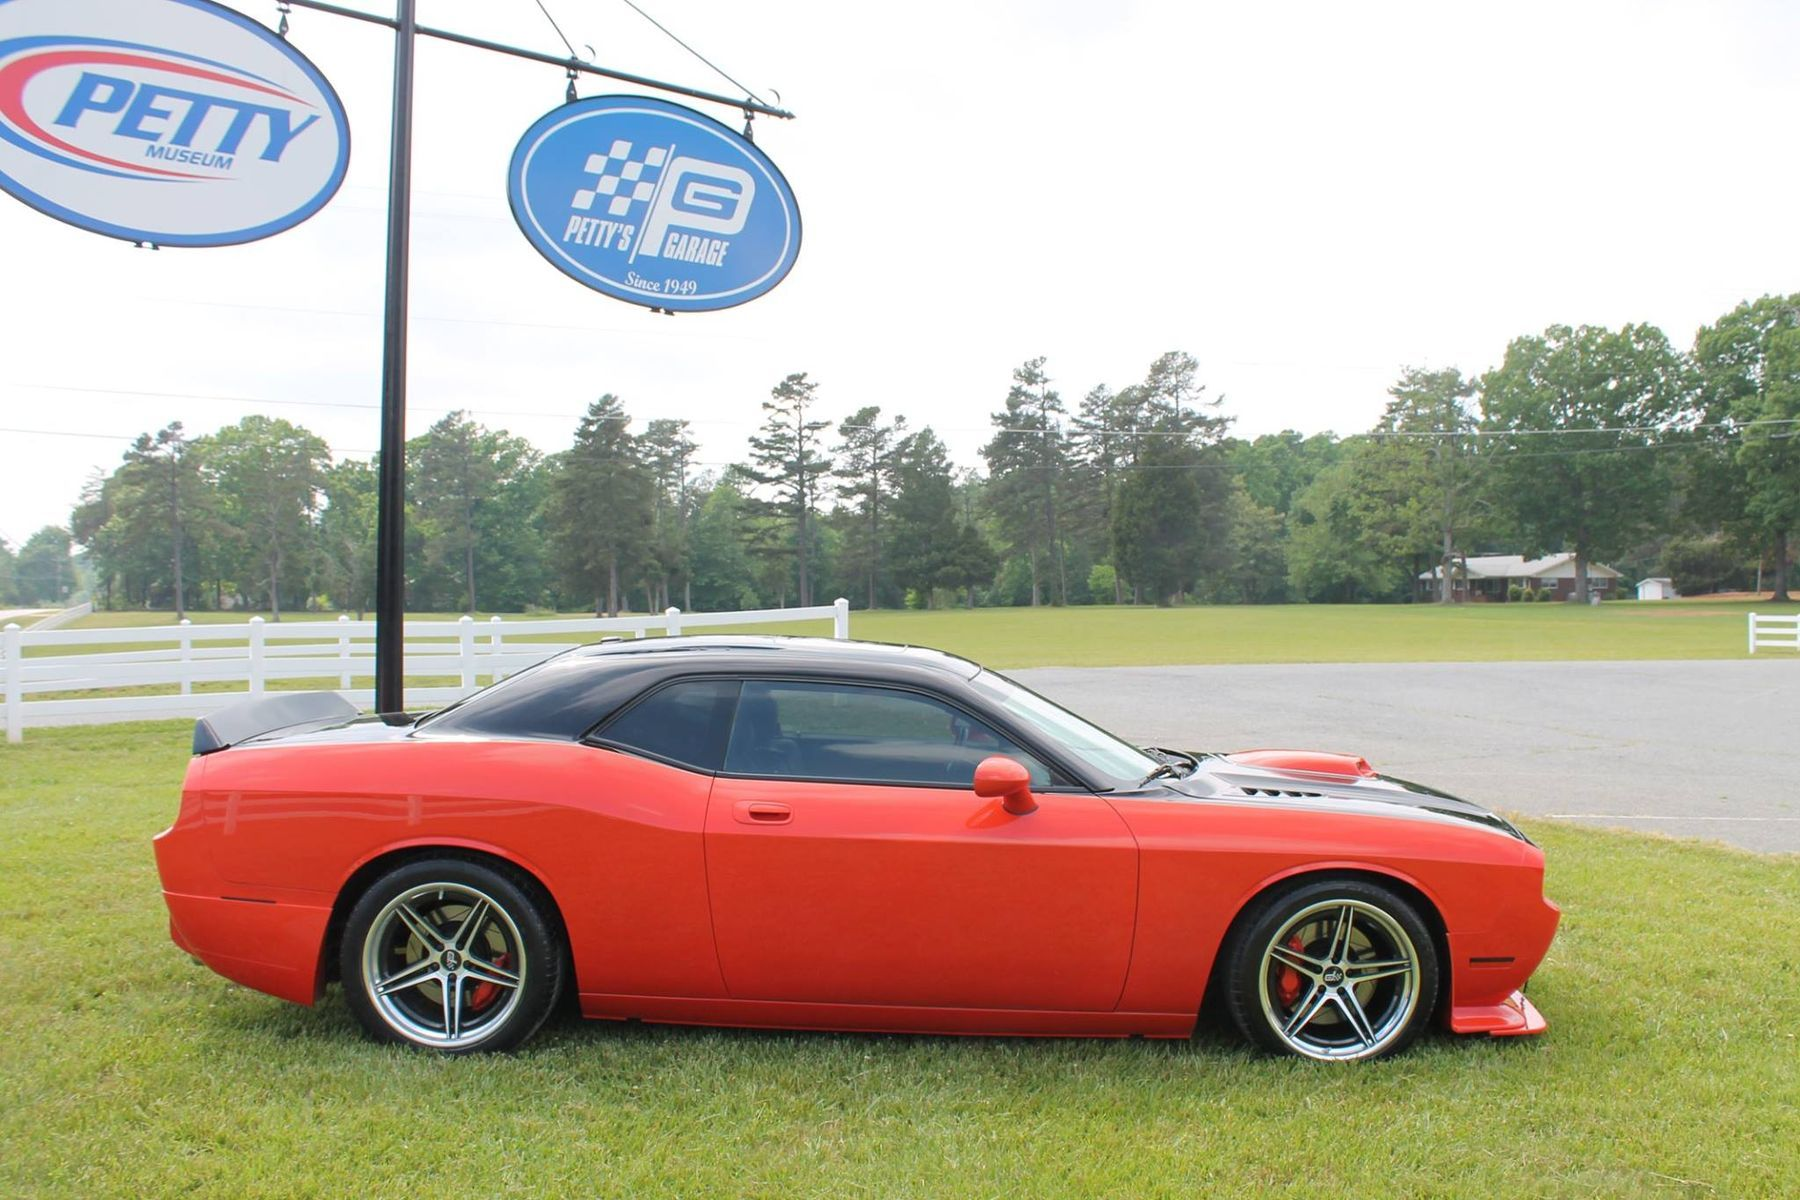 2015 Dodge Challenger | Petty Garage Signature Challenger on Forgeline SC3C-SL Wheels